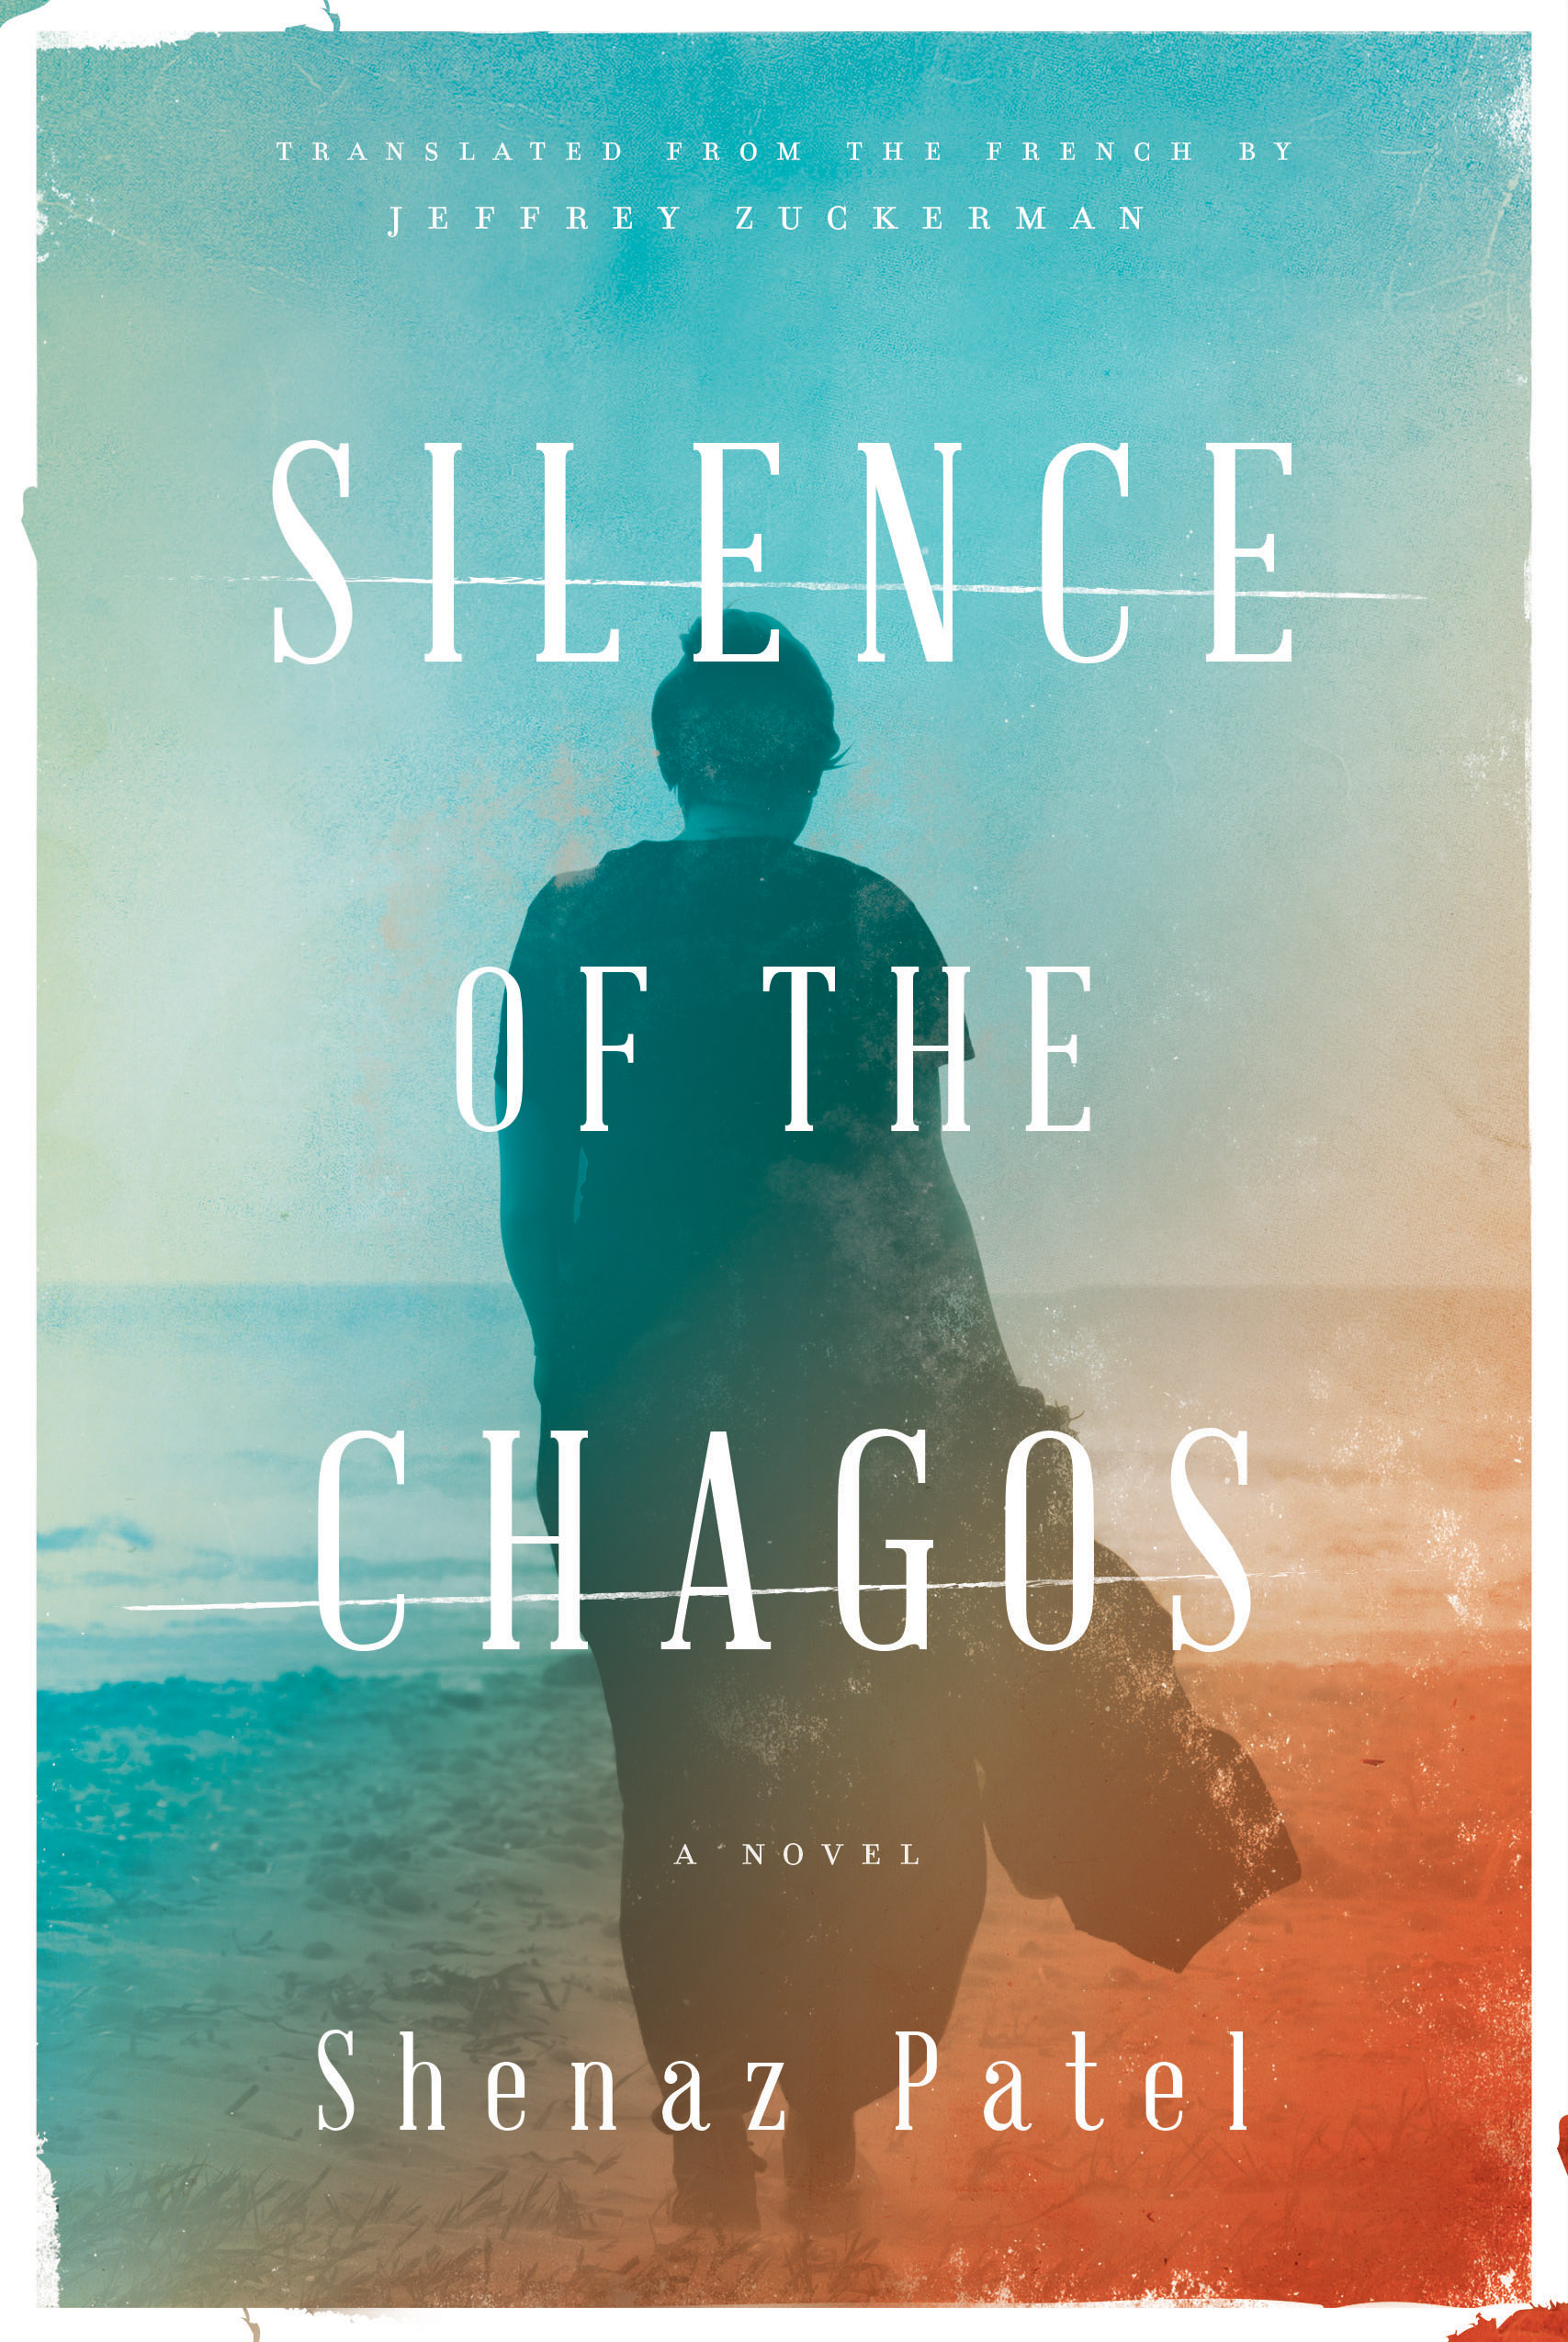 Silence of the Chagos, by Shenaz Patel - 9781632062345.jpg